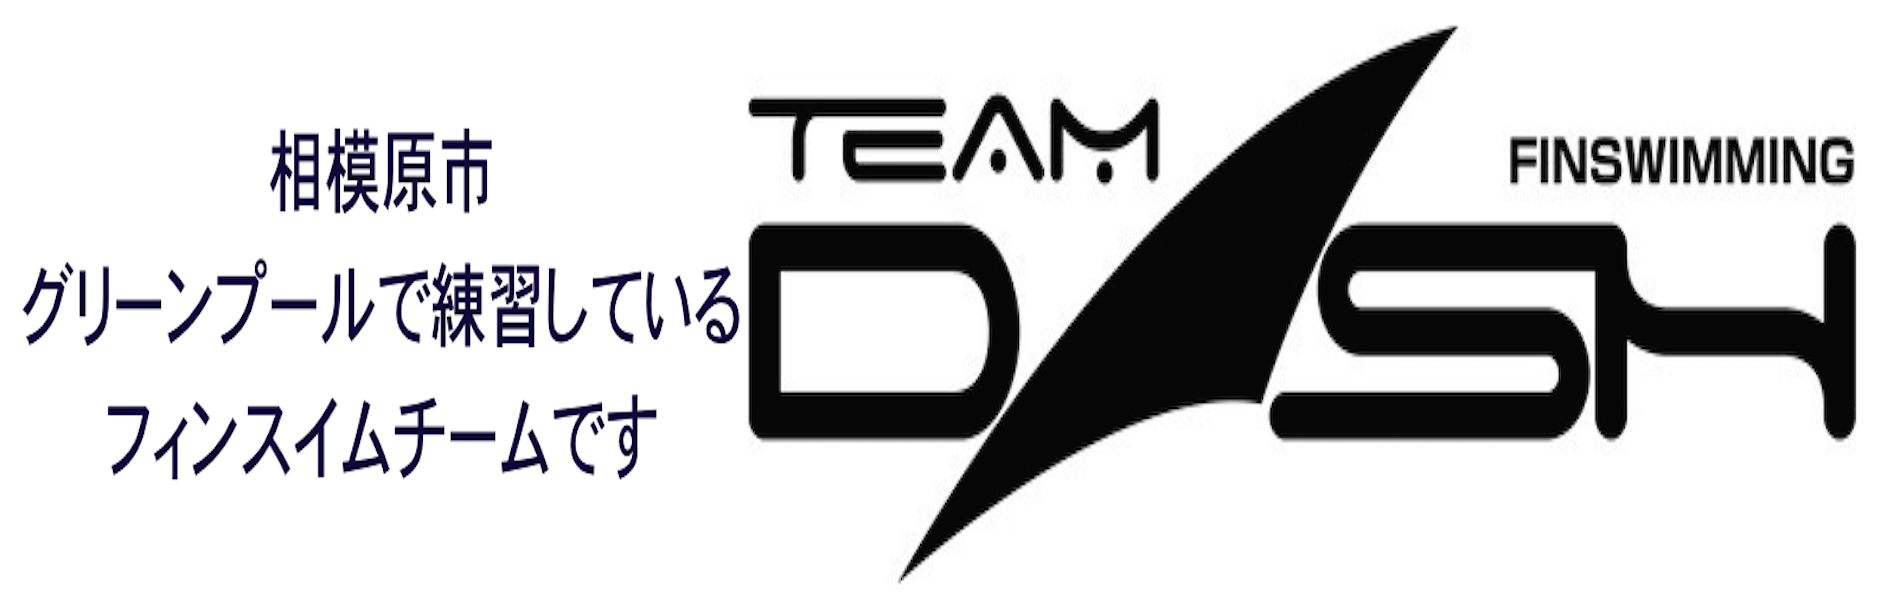 teamdash-logo